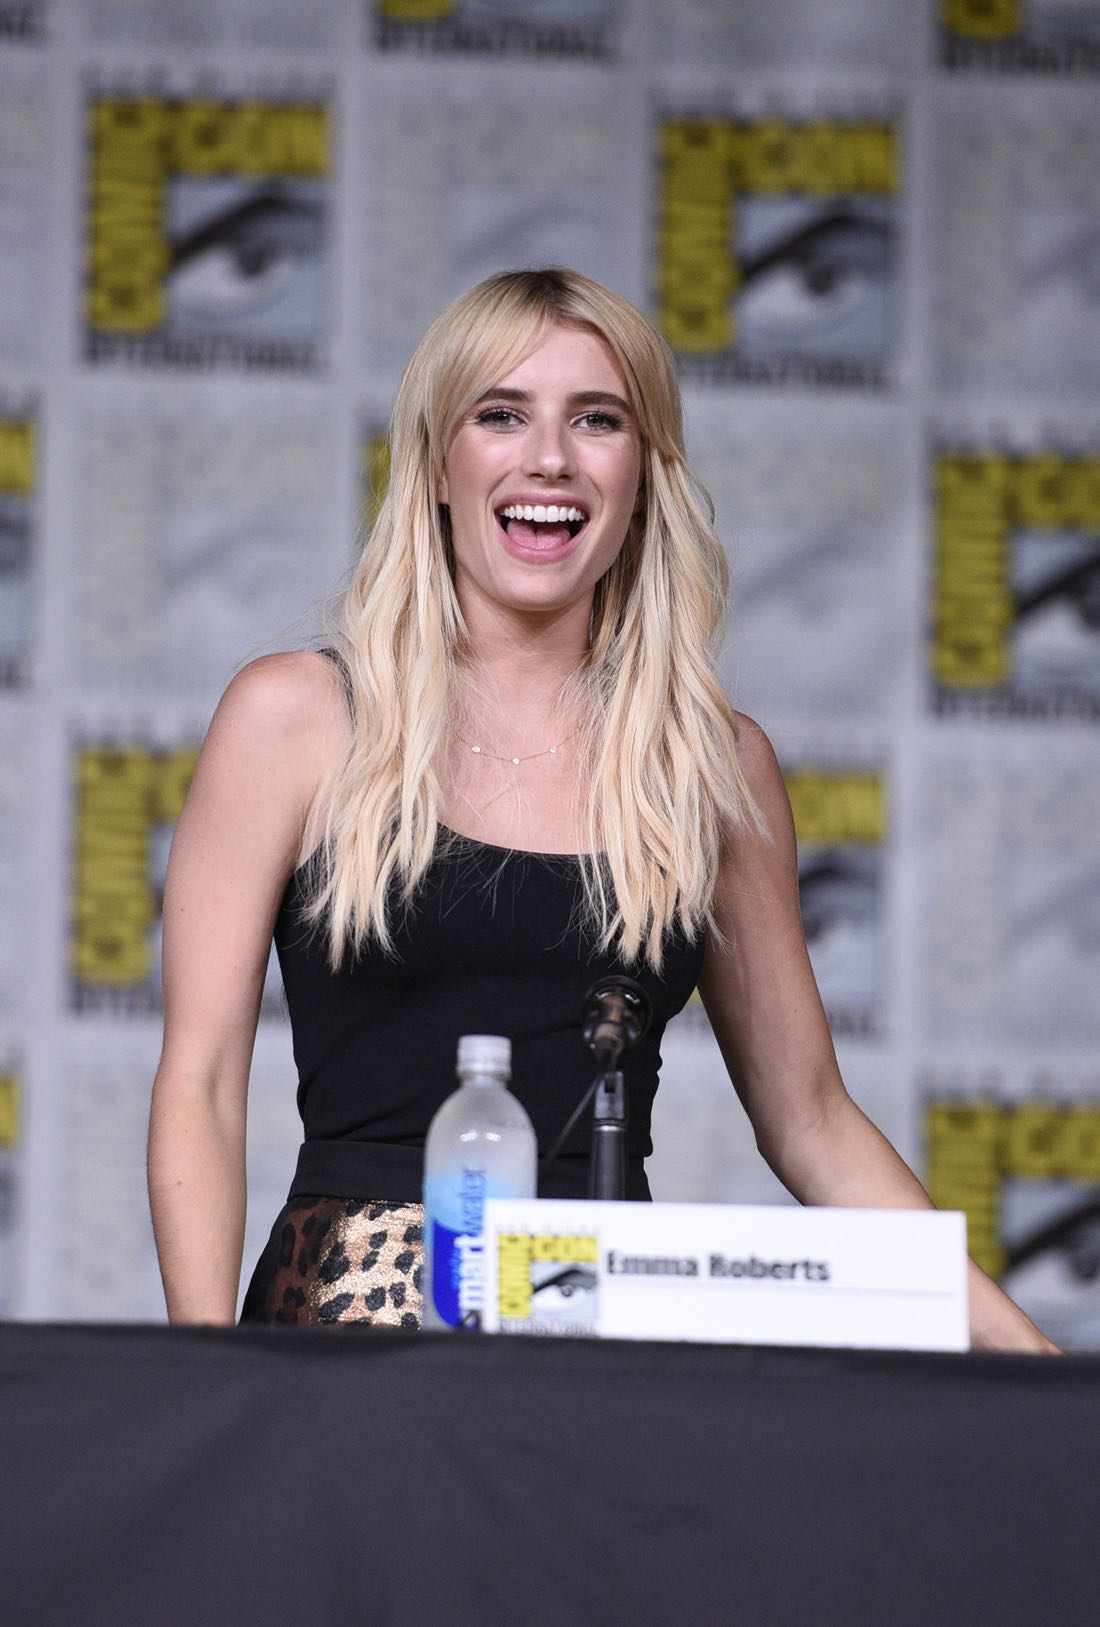 SDCC Photos : SCREAM QUEENS   Page 6 of 43   SEAT42F